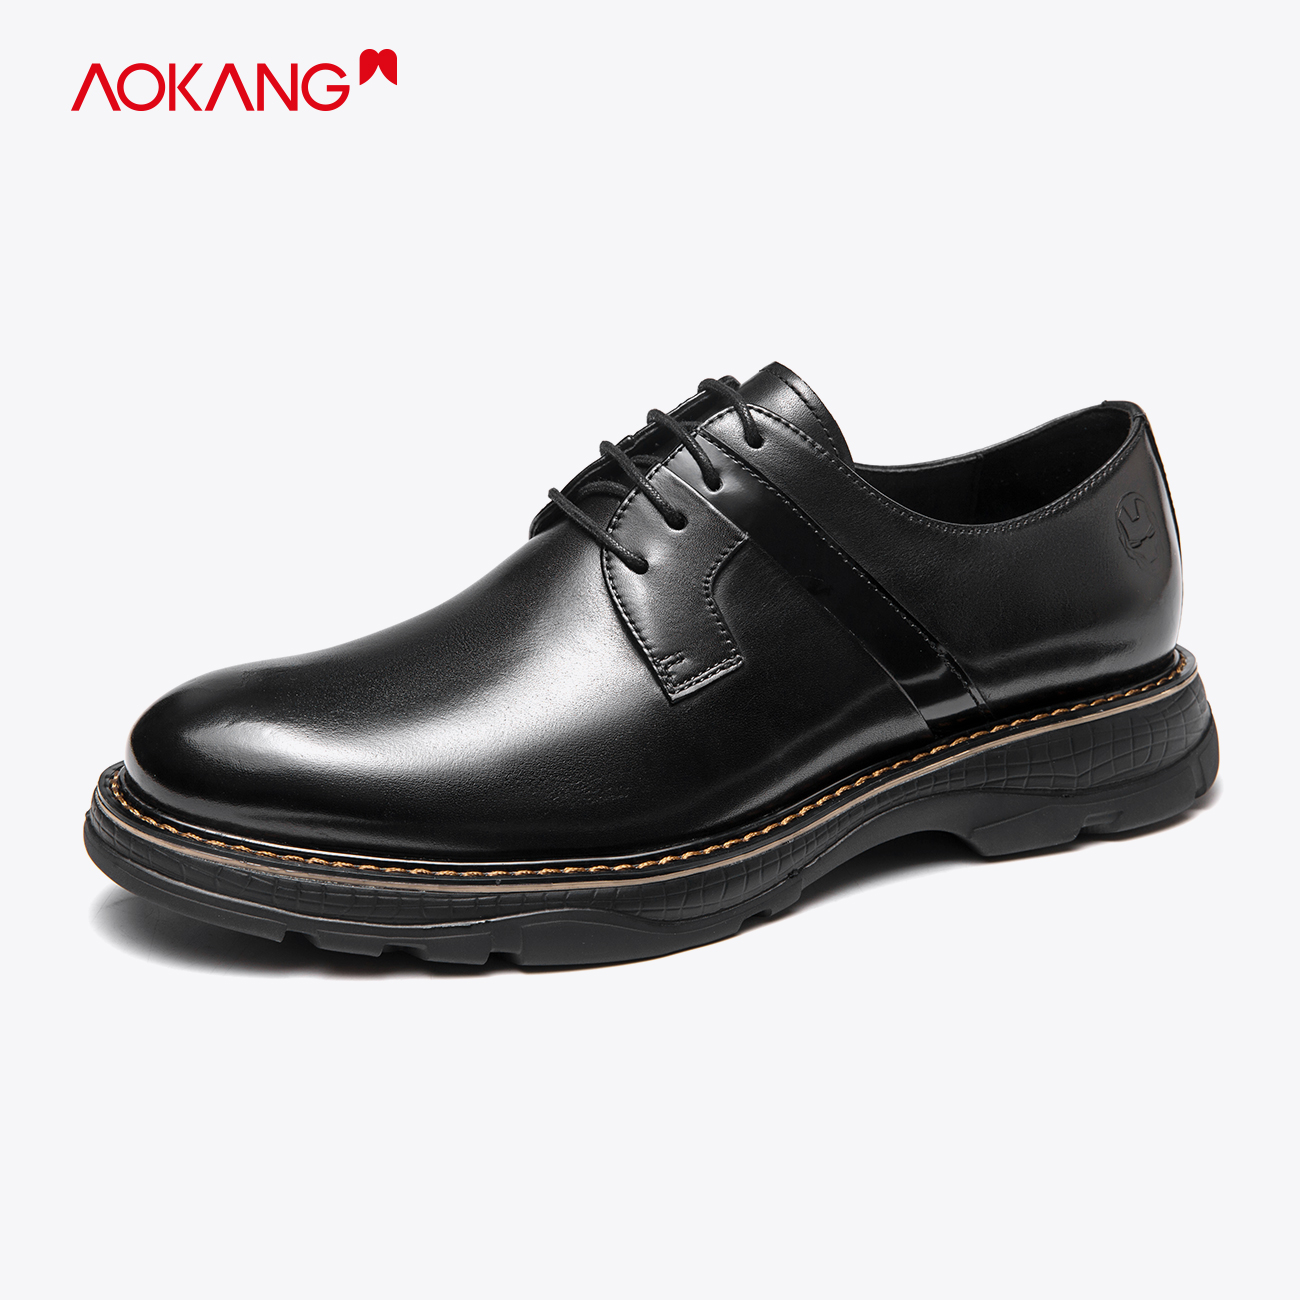 [manwei Iron Man series] Aokang mens shoes 2020 new genuine leather shoes mens British Derby shoes comfortable single shoes